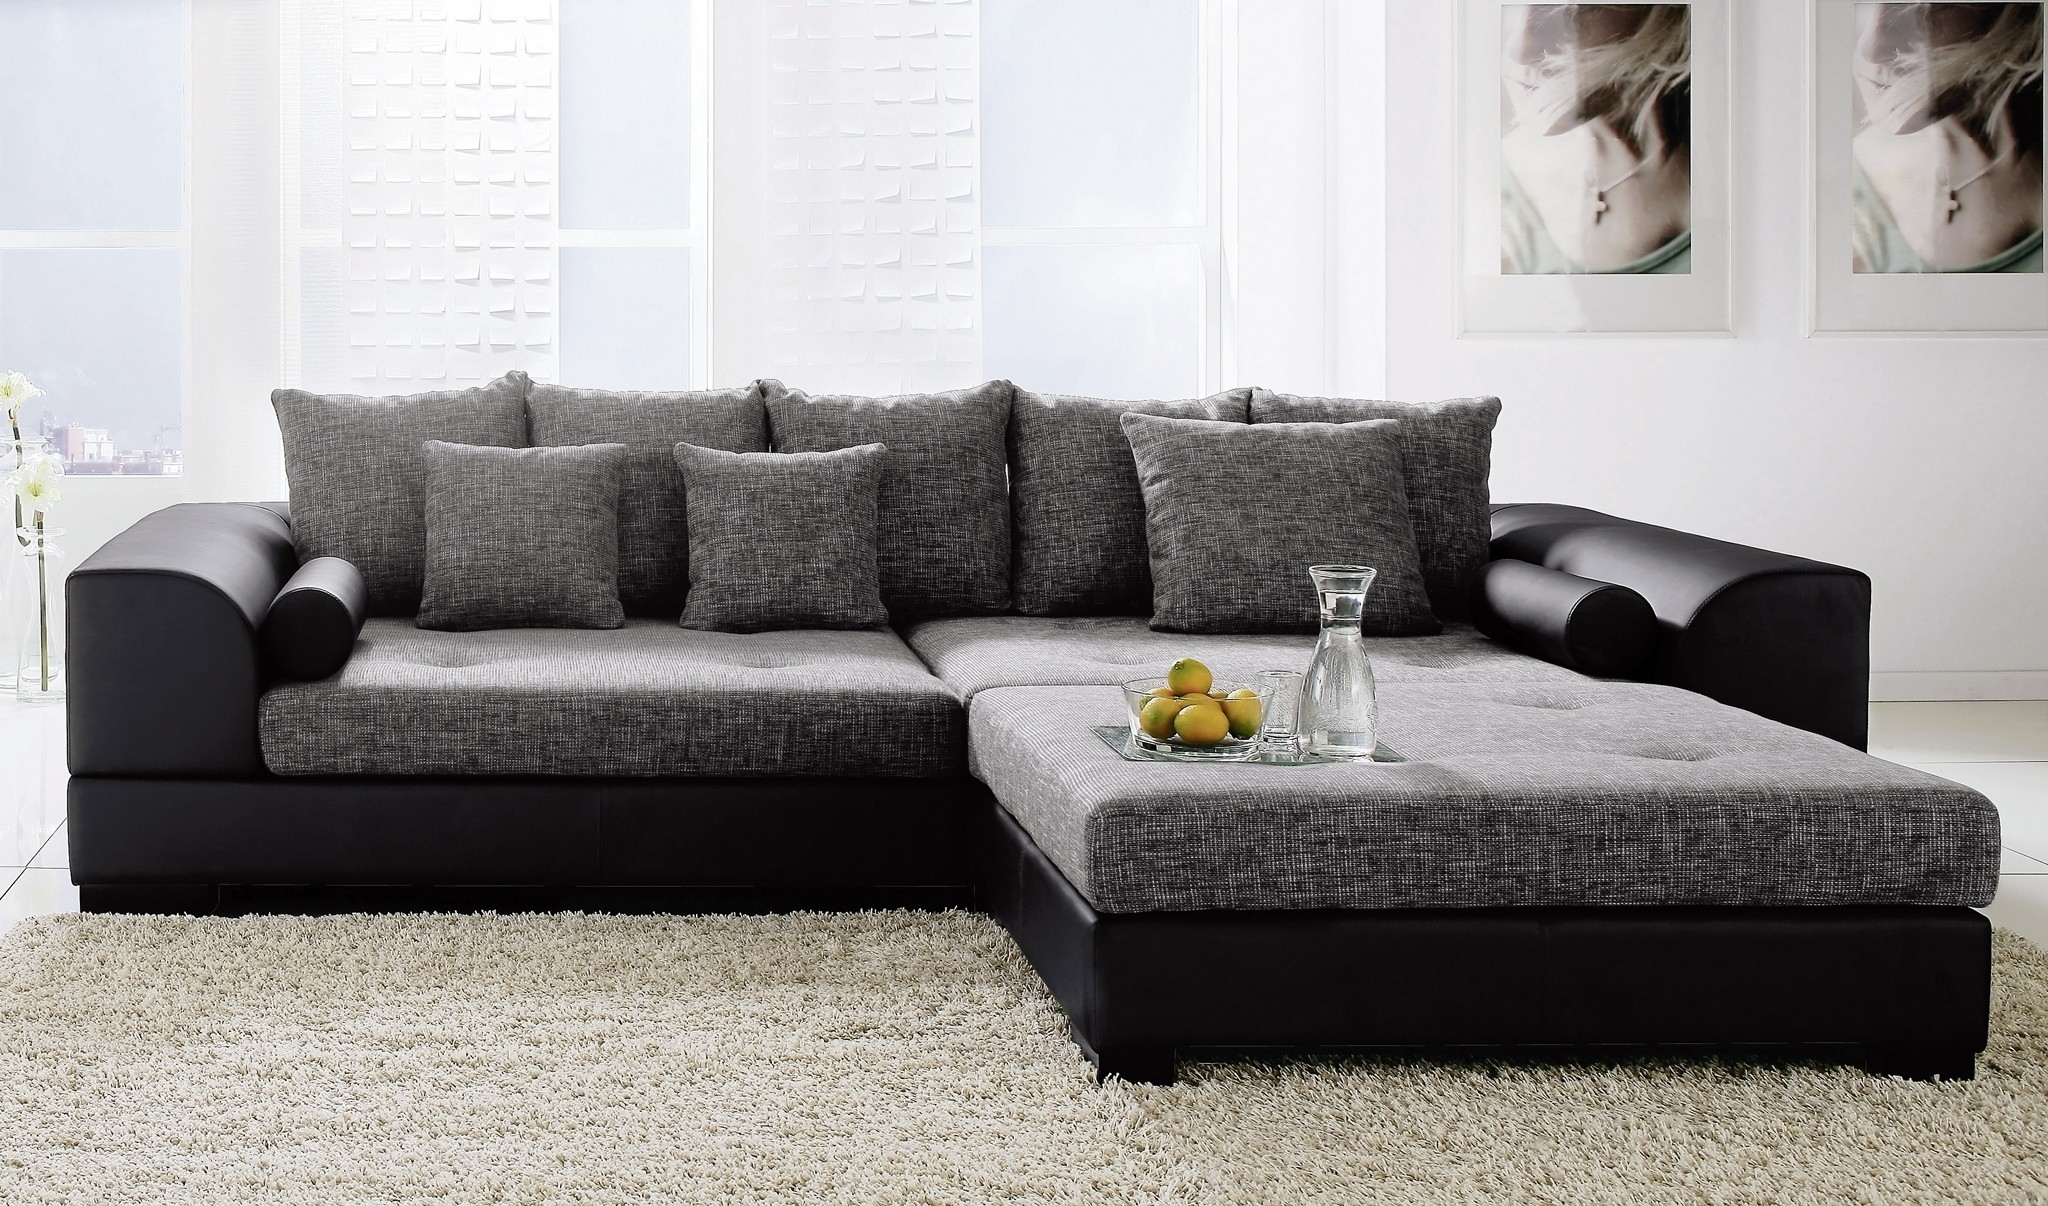 Sectional Couches With Ottoman Brown Suede Couch Waffle Modern For Couches With Large Ottoman (View 7 of 10)